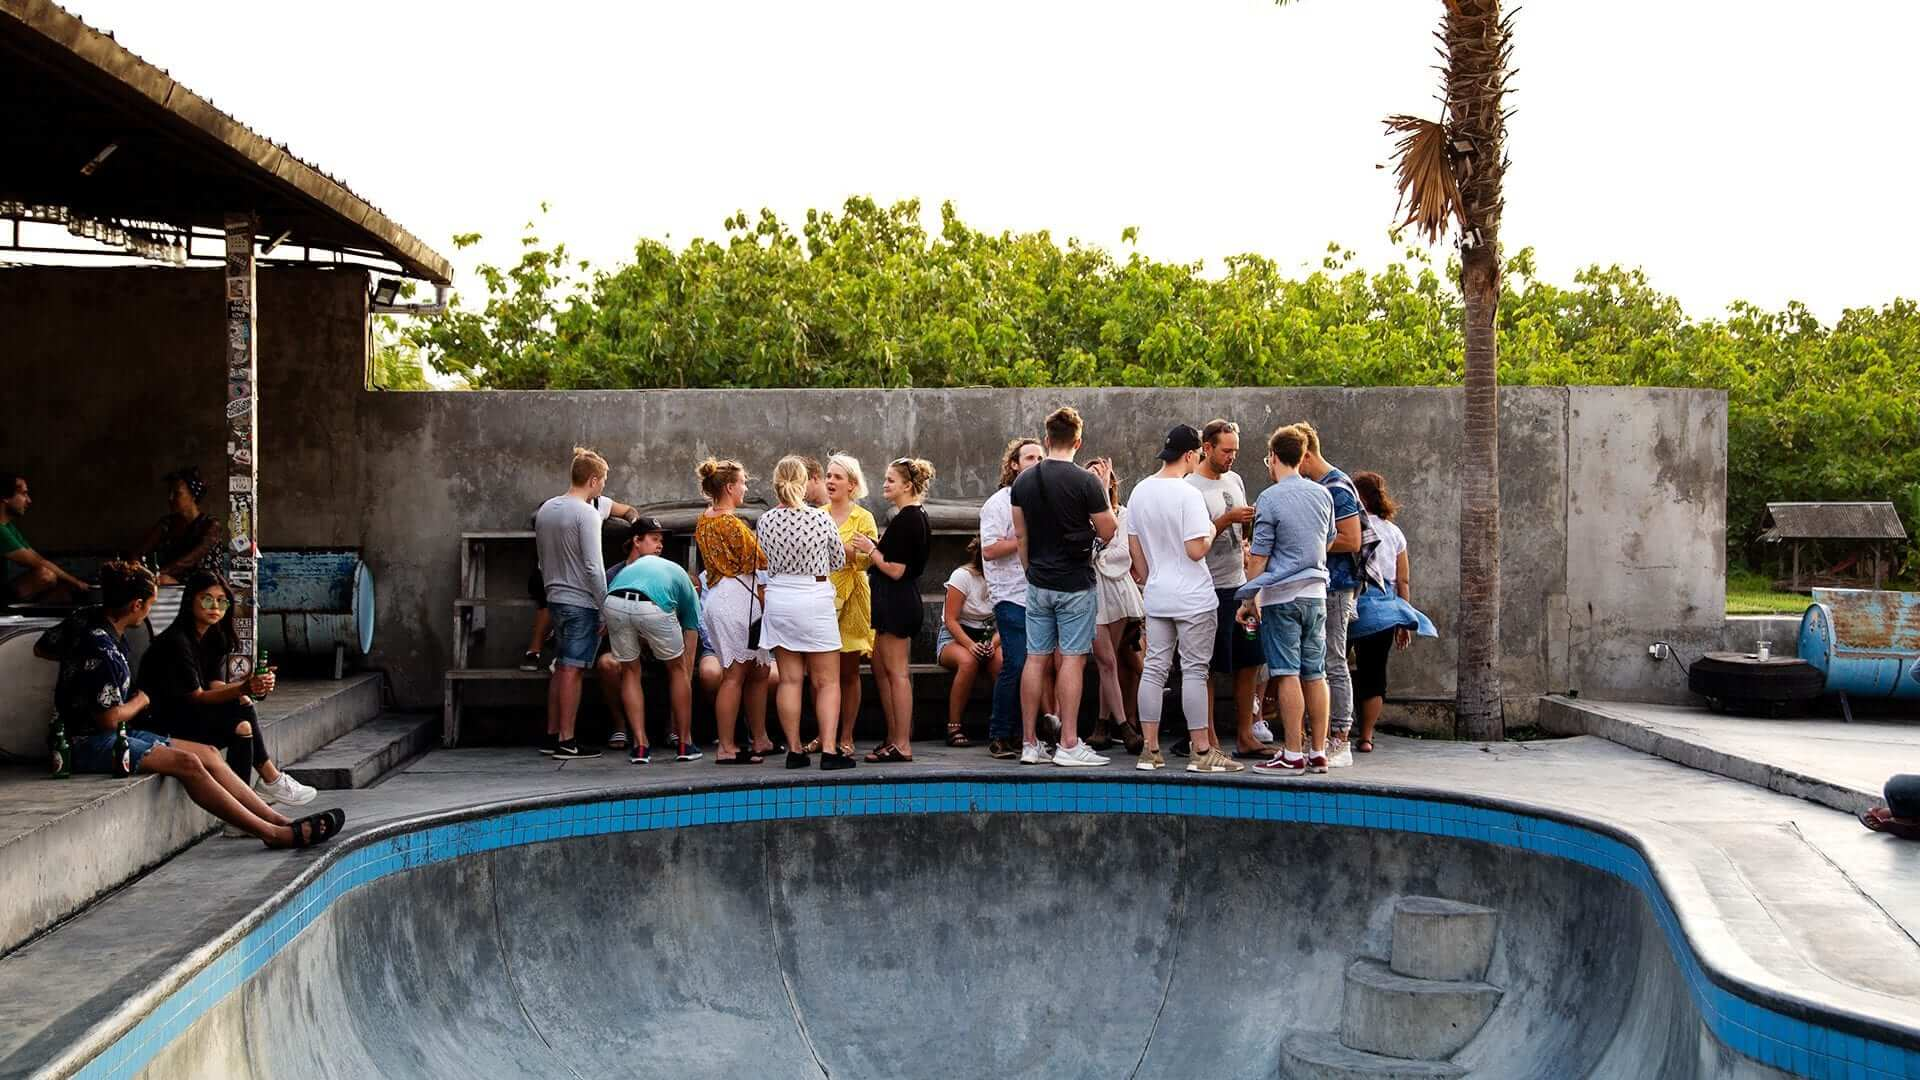 People standing around talking hanging out beside an empty pool